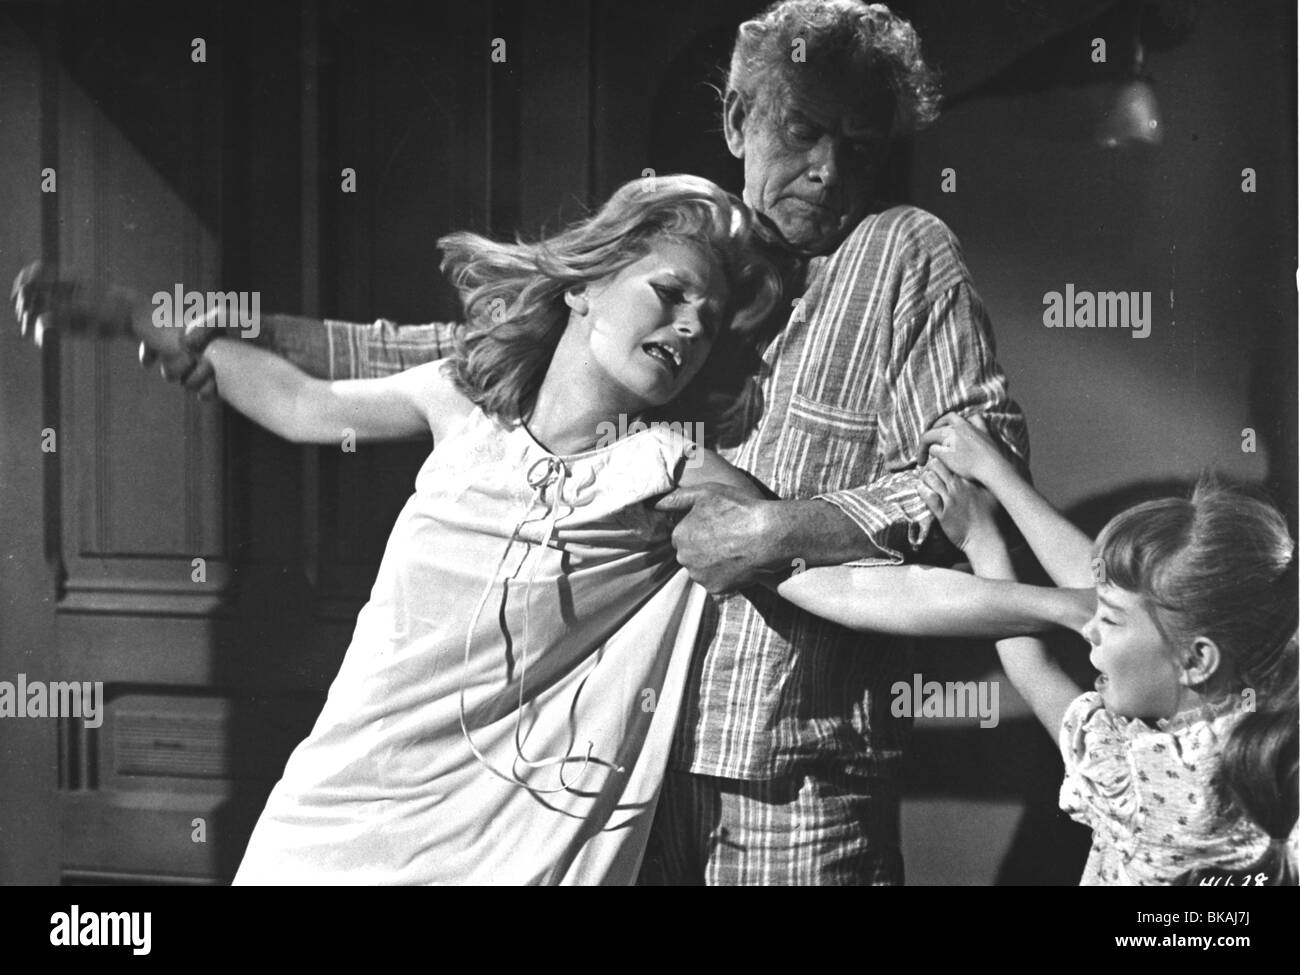 DAYS OF WINE AND ROSES (1962) LEE REMICK, CHARLES BICKFORD DWRS 011P Stock  Photo - Alamy